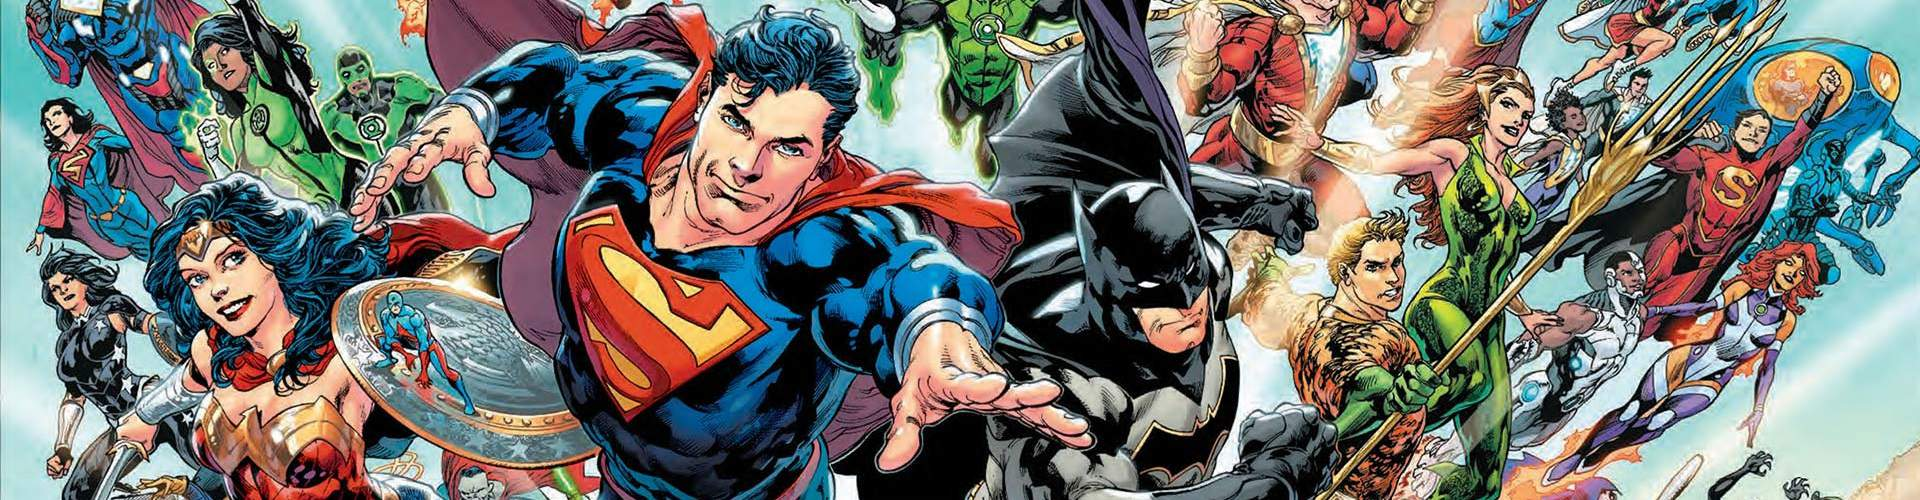 on sale this week: dc rebirth